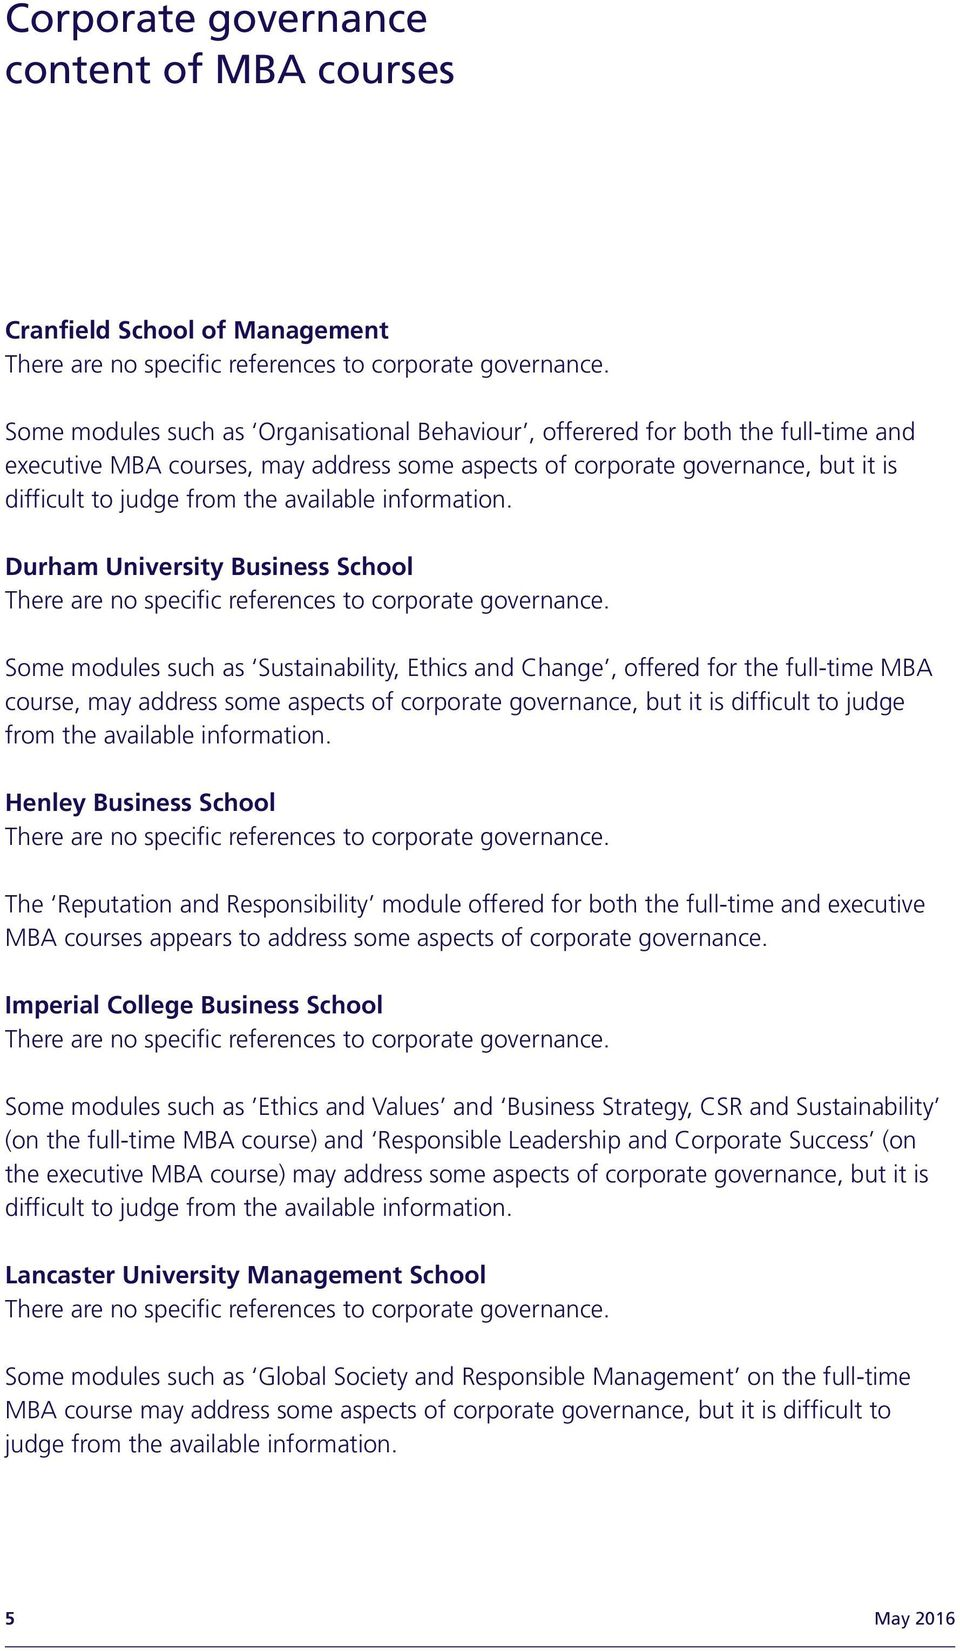 Durham University Business School Some modules such as Sustainability, Ethics and Change, offered for the full-time MBA course, may address some aspects of corporate governance, but it is  Henley